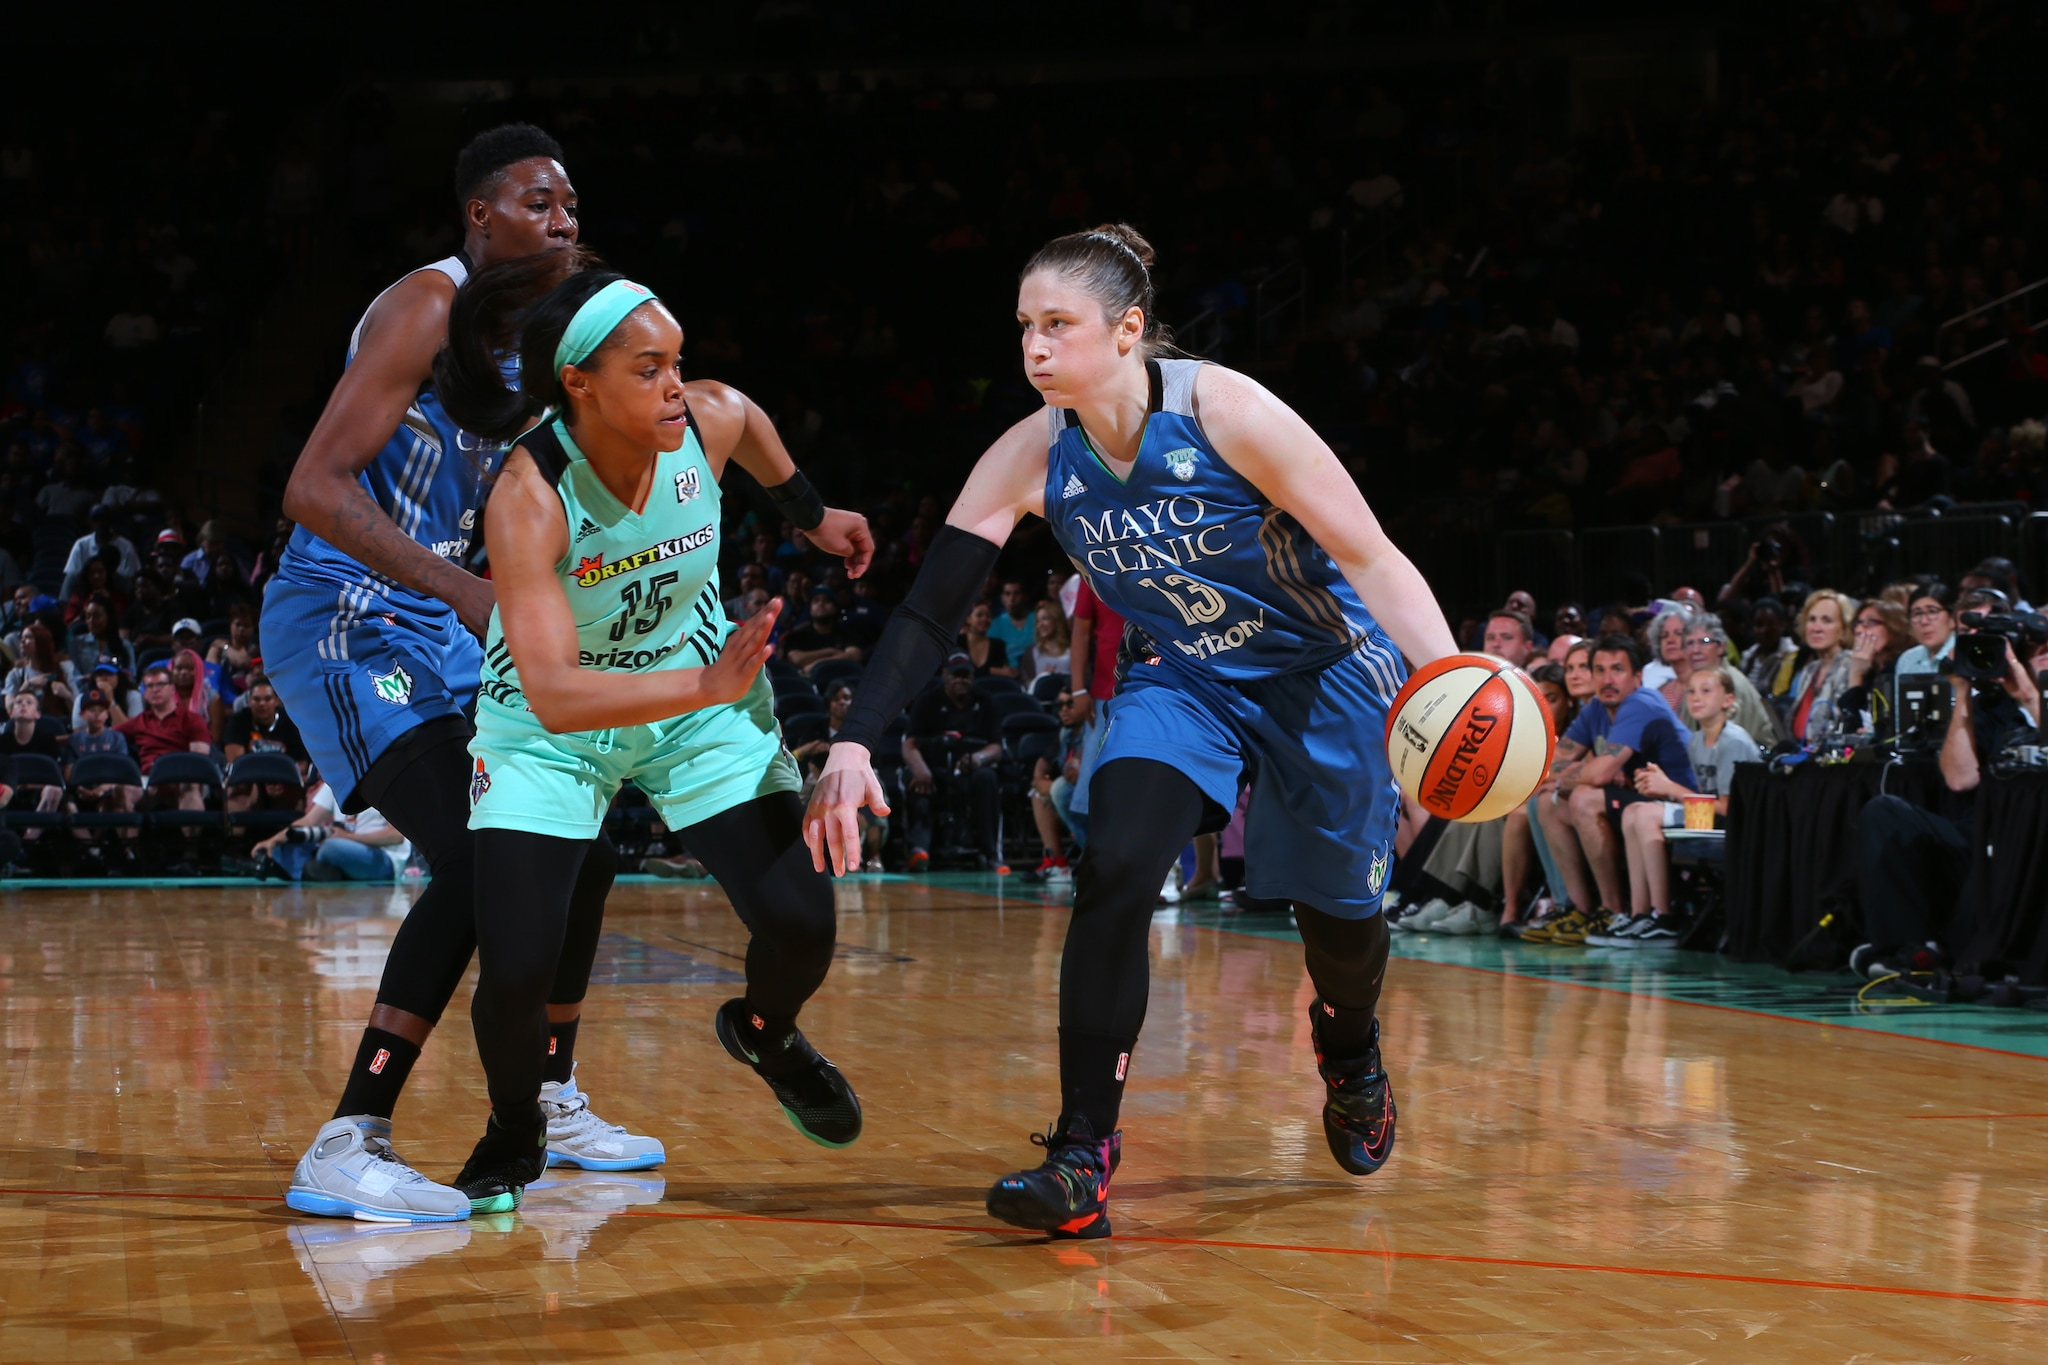 NEW YORK, NY - MAY 31: Lindsay Whalen #13 of the Minnesota Lynx drives to the basket against the New York Liberty during the game on May 31, 2016 at Madison Square Garden in New York, New York. NOTE TO USER: User expressly acknowledges and agrees that, by downloading and or using this Photograph, user is consenting to the terms and conditions of the Getty Images License Agreement. Mandatory Copyright Notice: Copyright 2016 NBAE (Photo by Mike Stobe/NBAE via Getty Images)